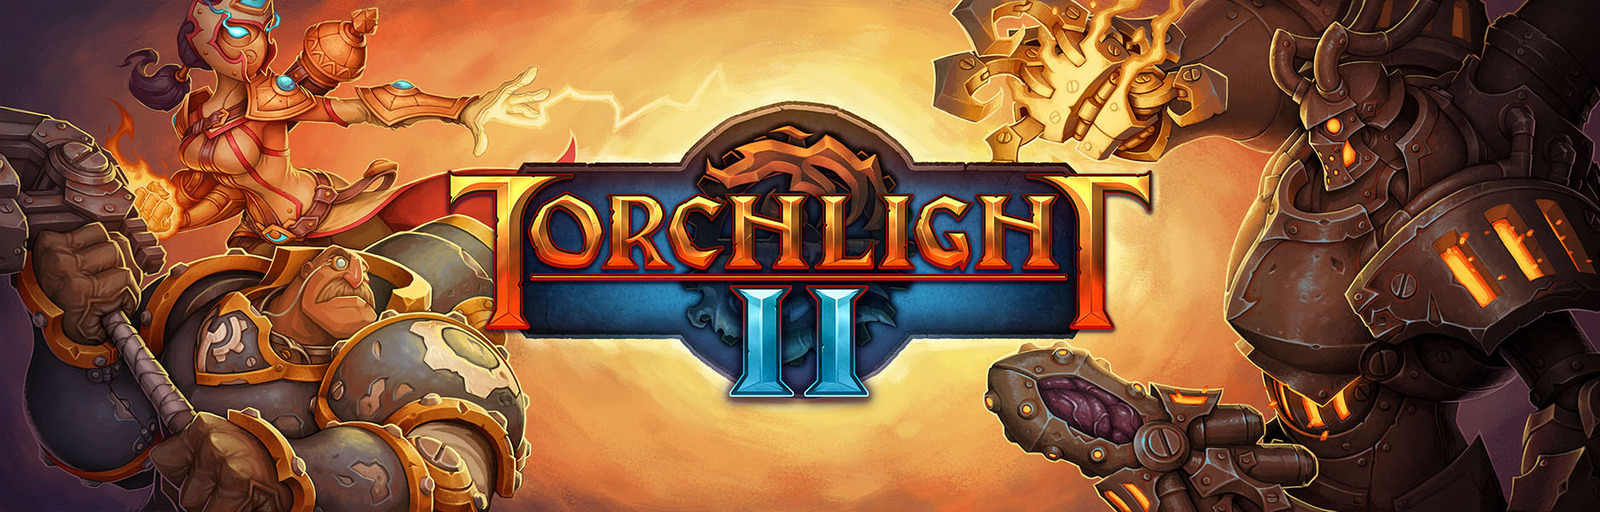 Torchlight 2 World Map.Torchlight Ii Christmas Giveaway Gamersbook